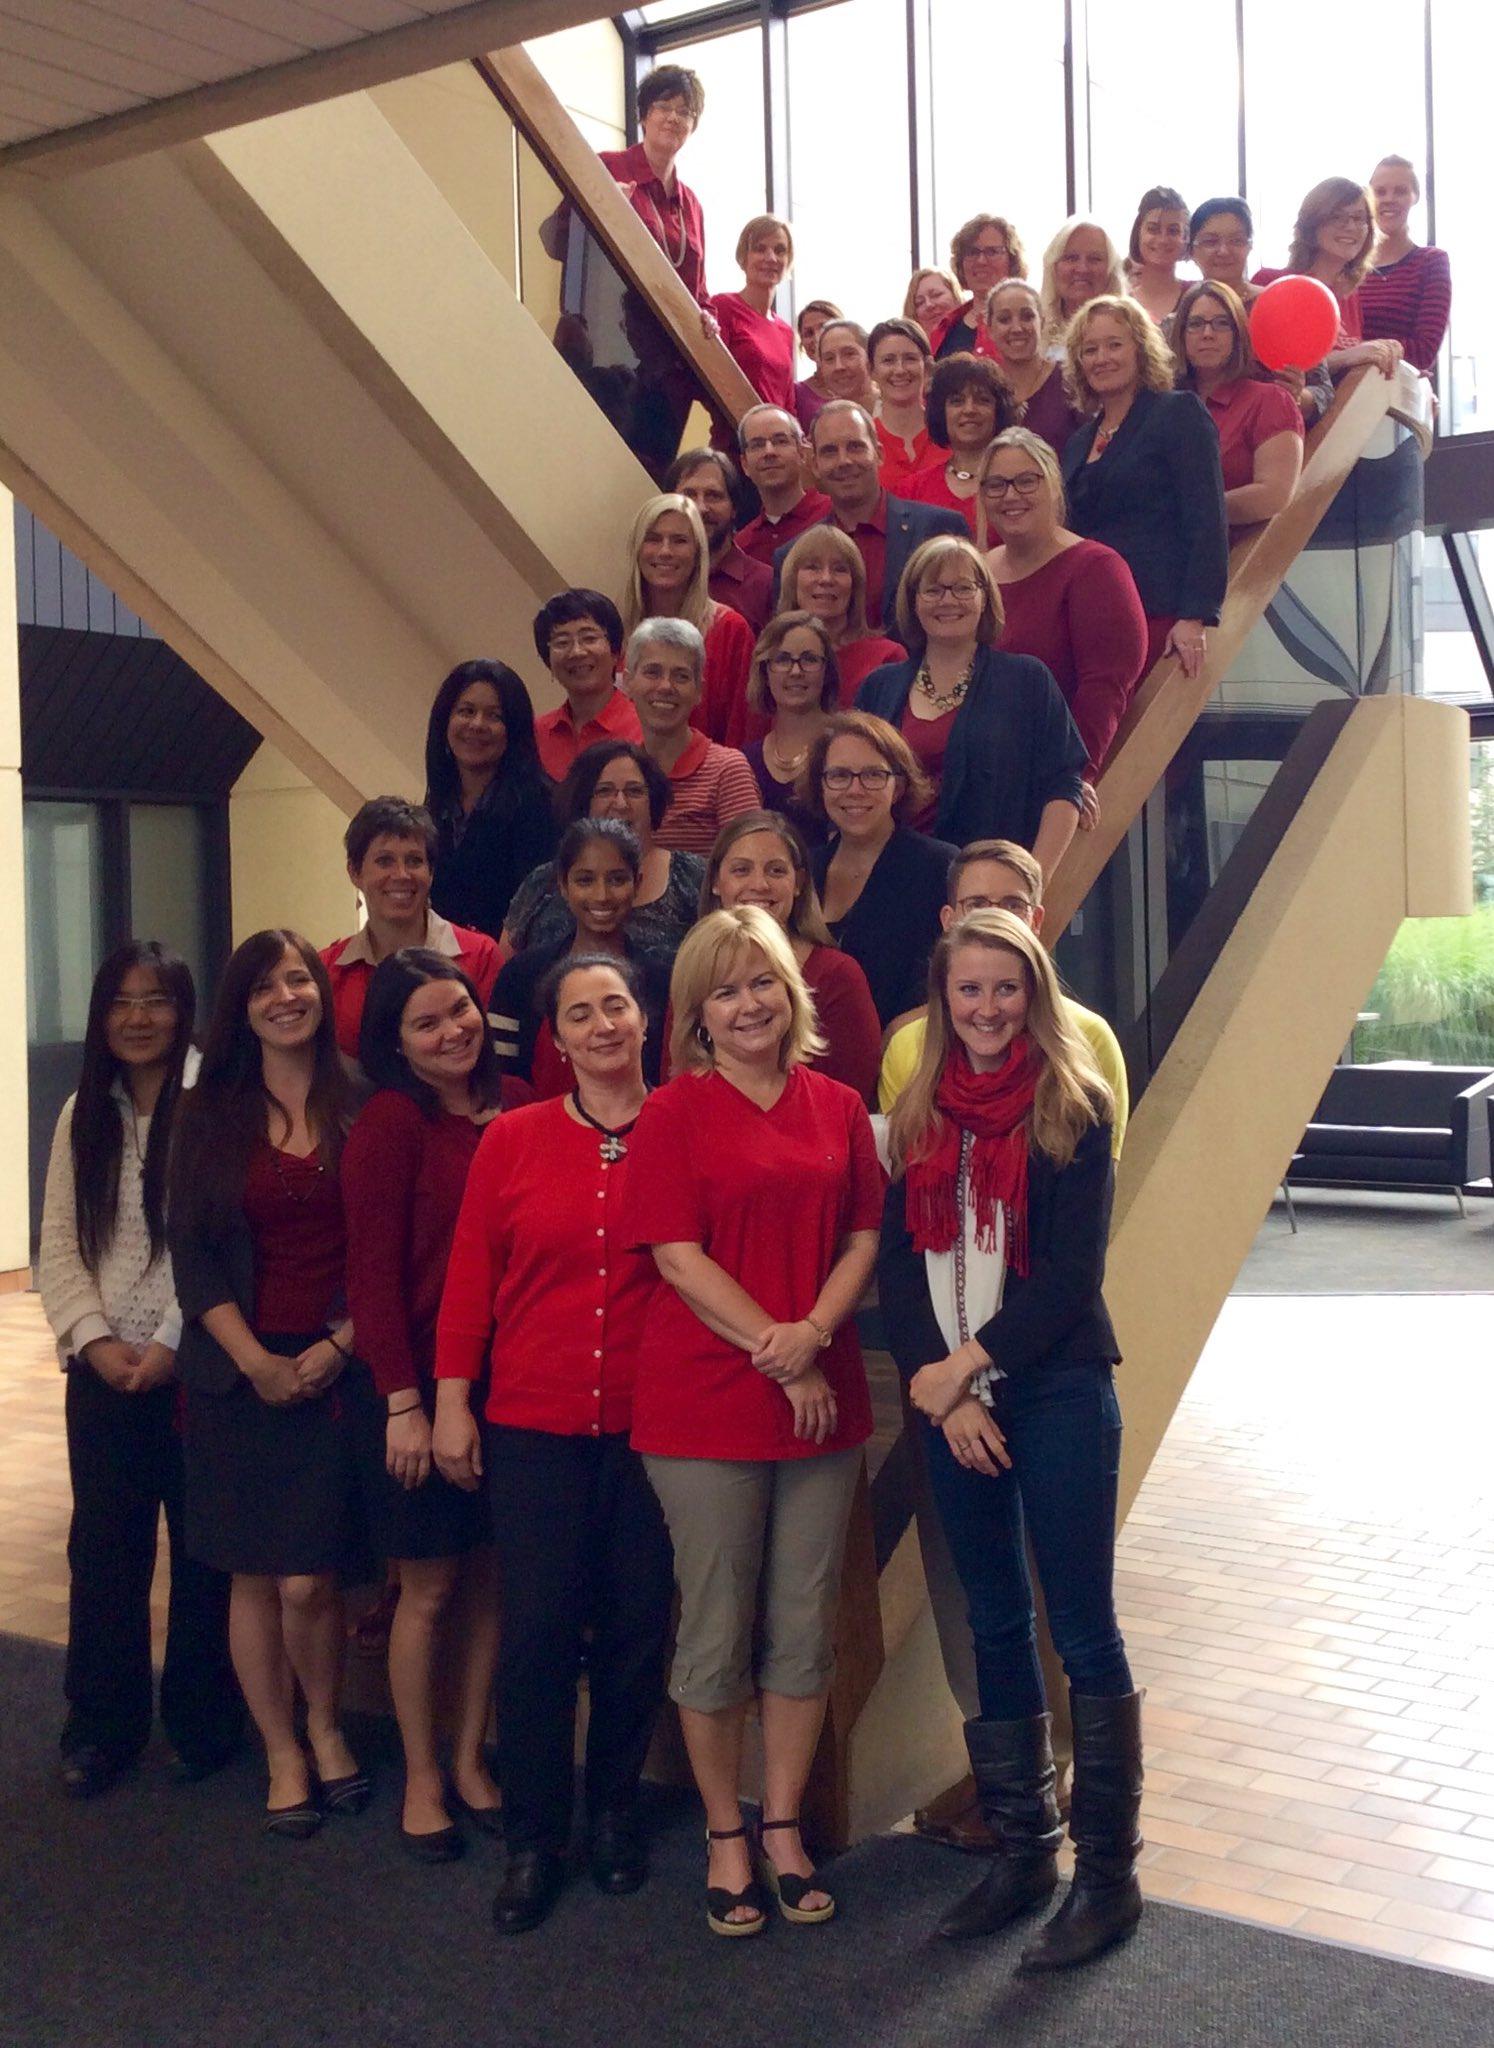 The Office of Advancement kicks off their United Way campaign by wearing red! #UWUnitedWay https://t.co/RpRTNx8MgB